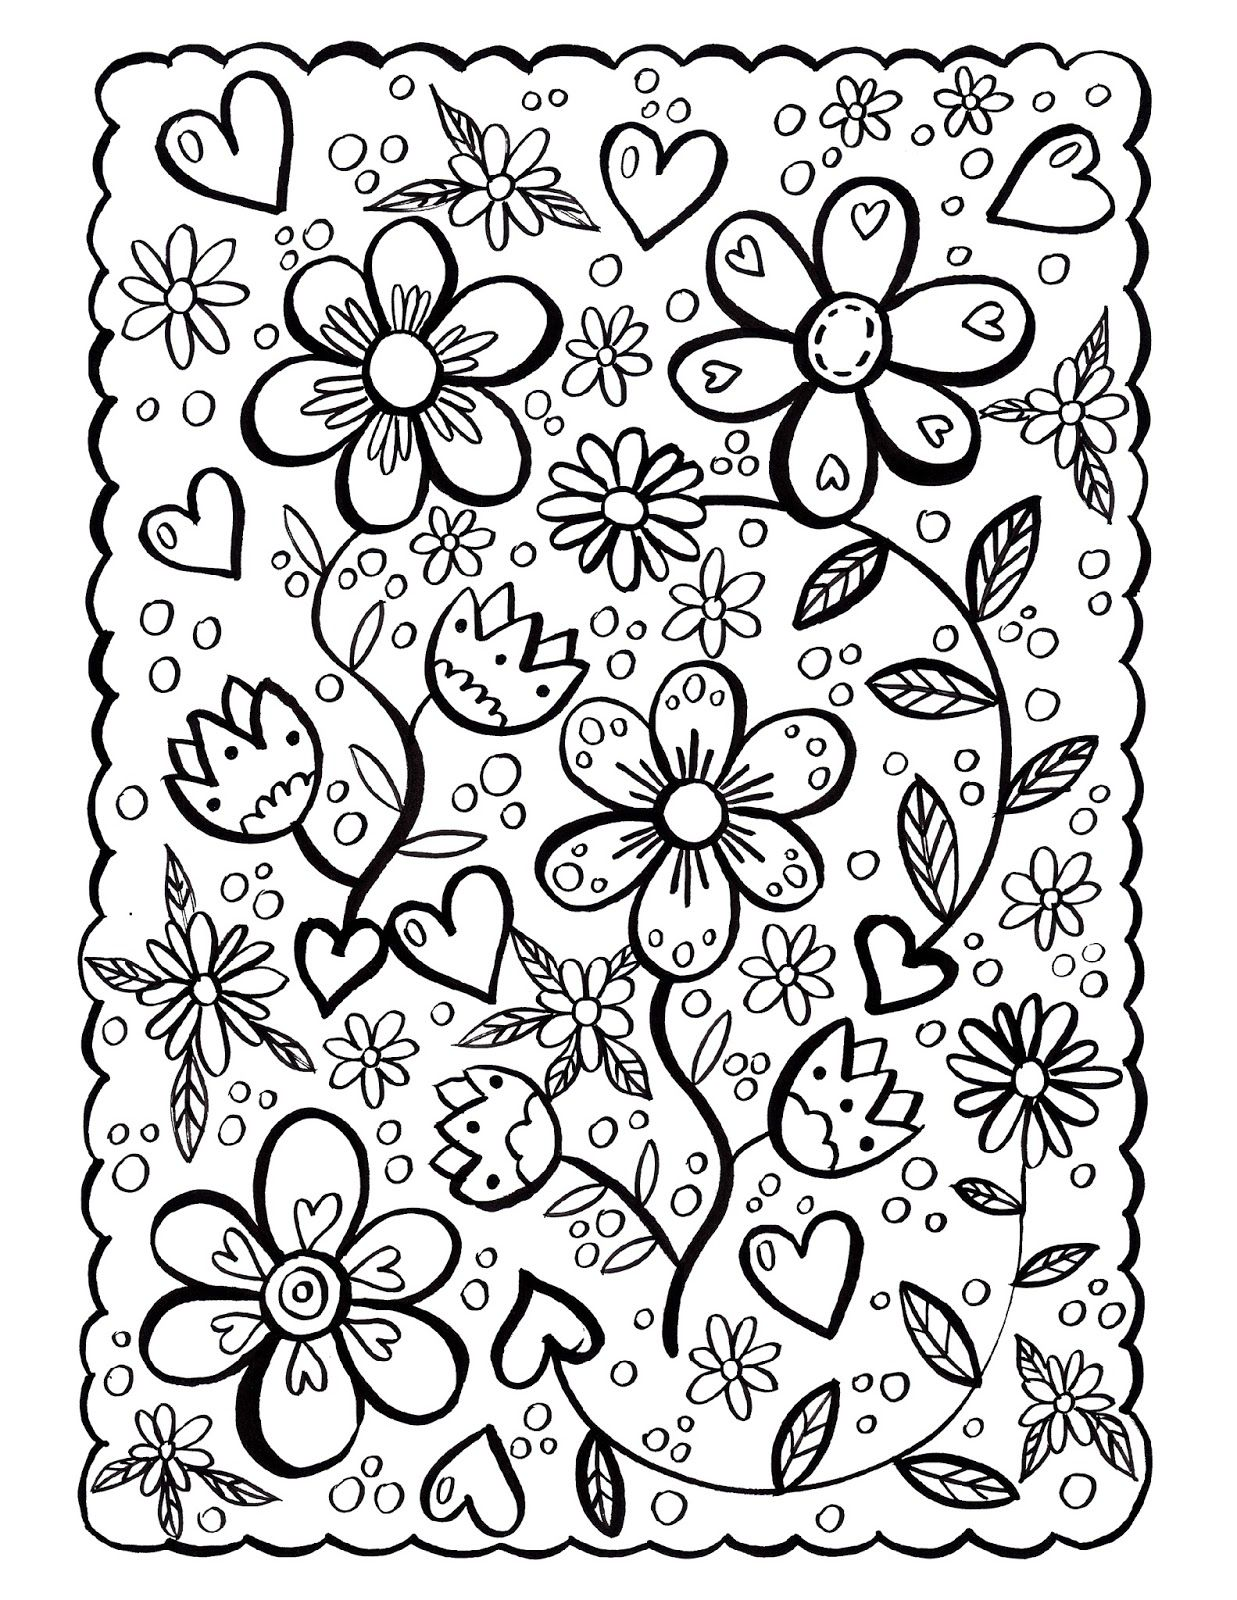 Still winter outside so i decided to draw some spring flowers to